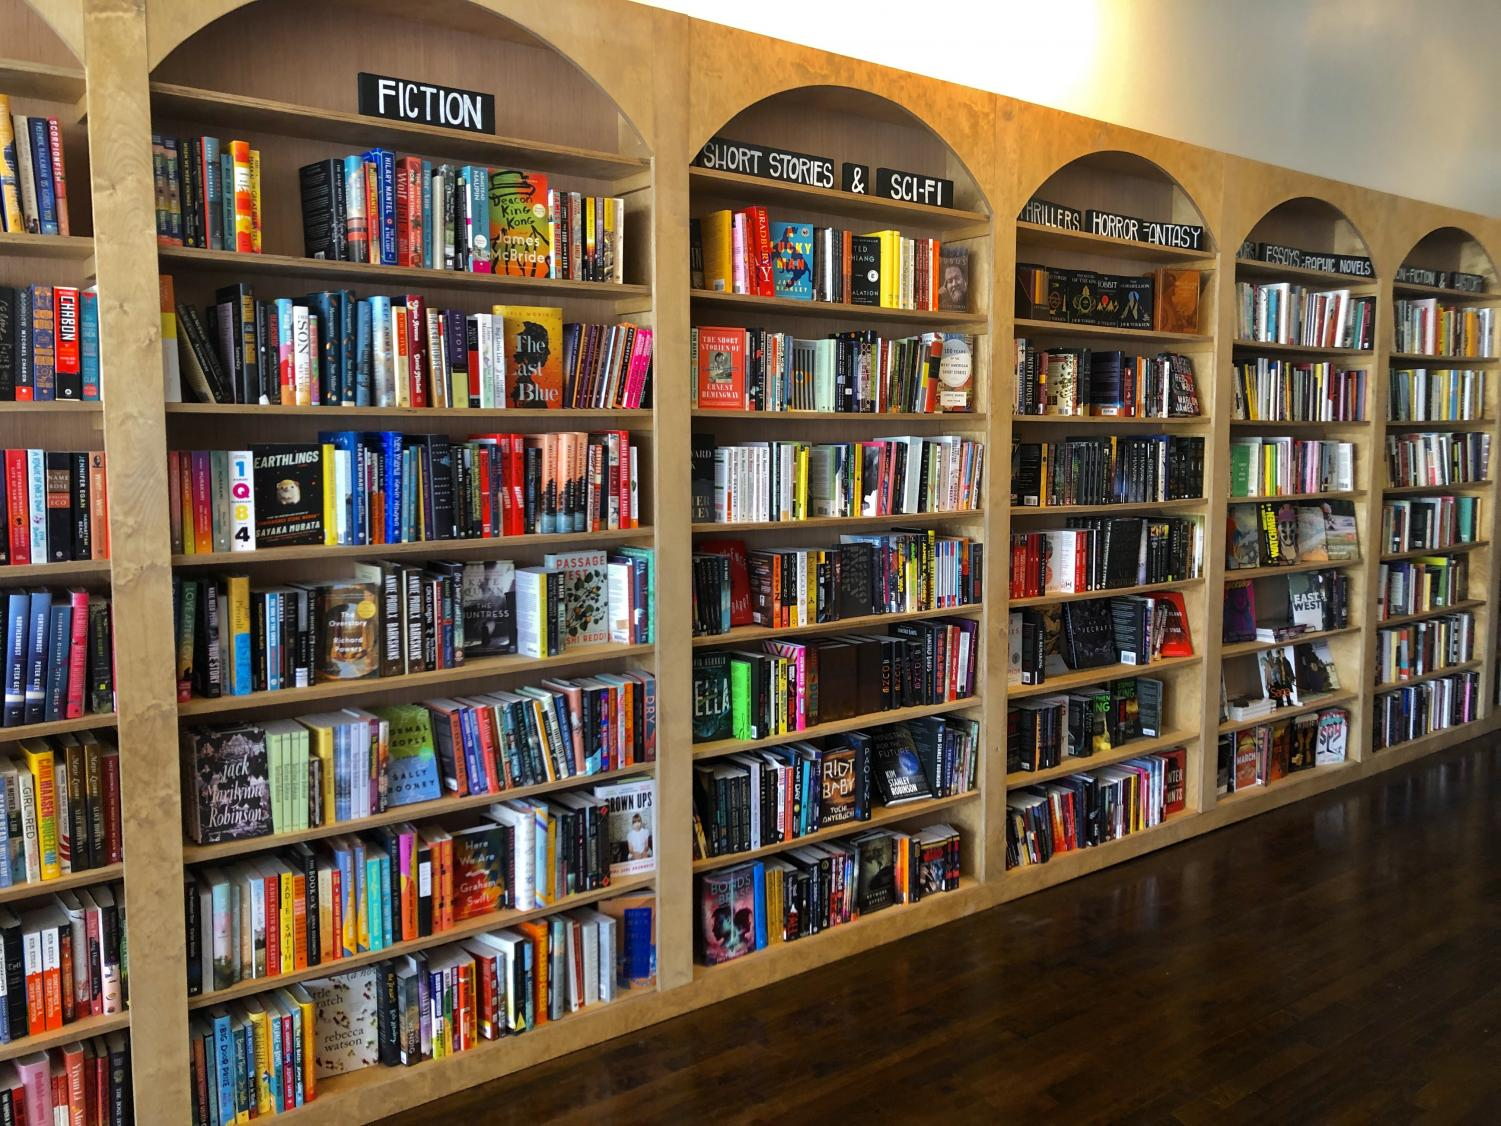 A wide variety of genres for every reader imaginable is displayed on original shelving at Timbre Books.